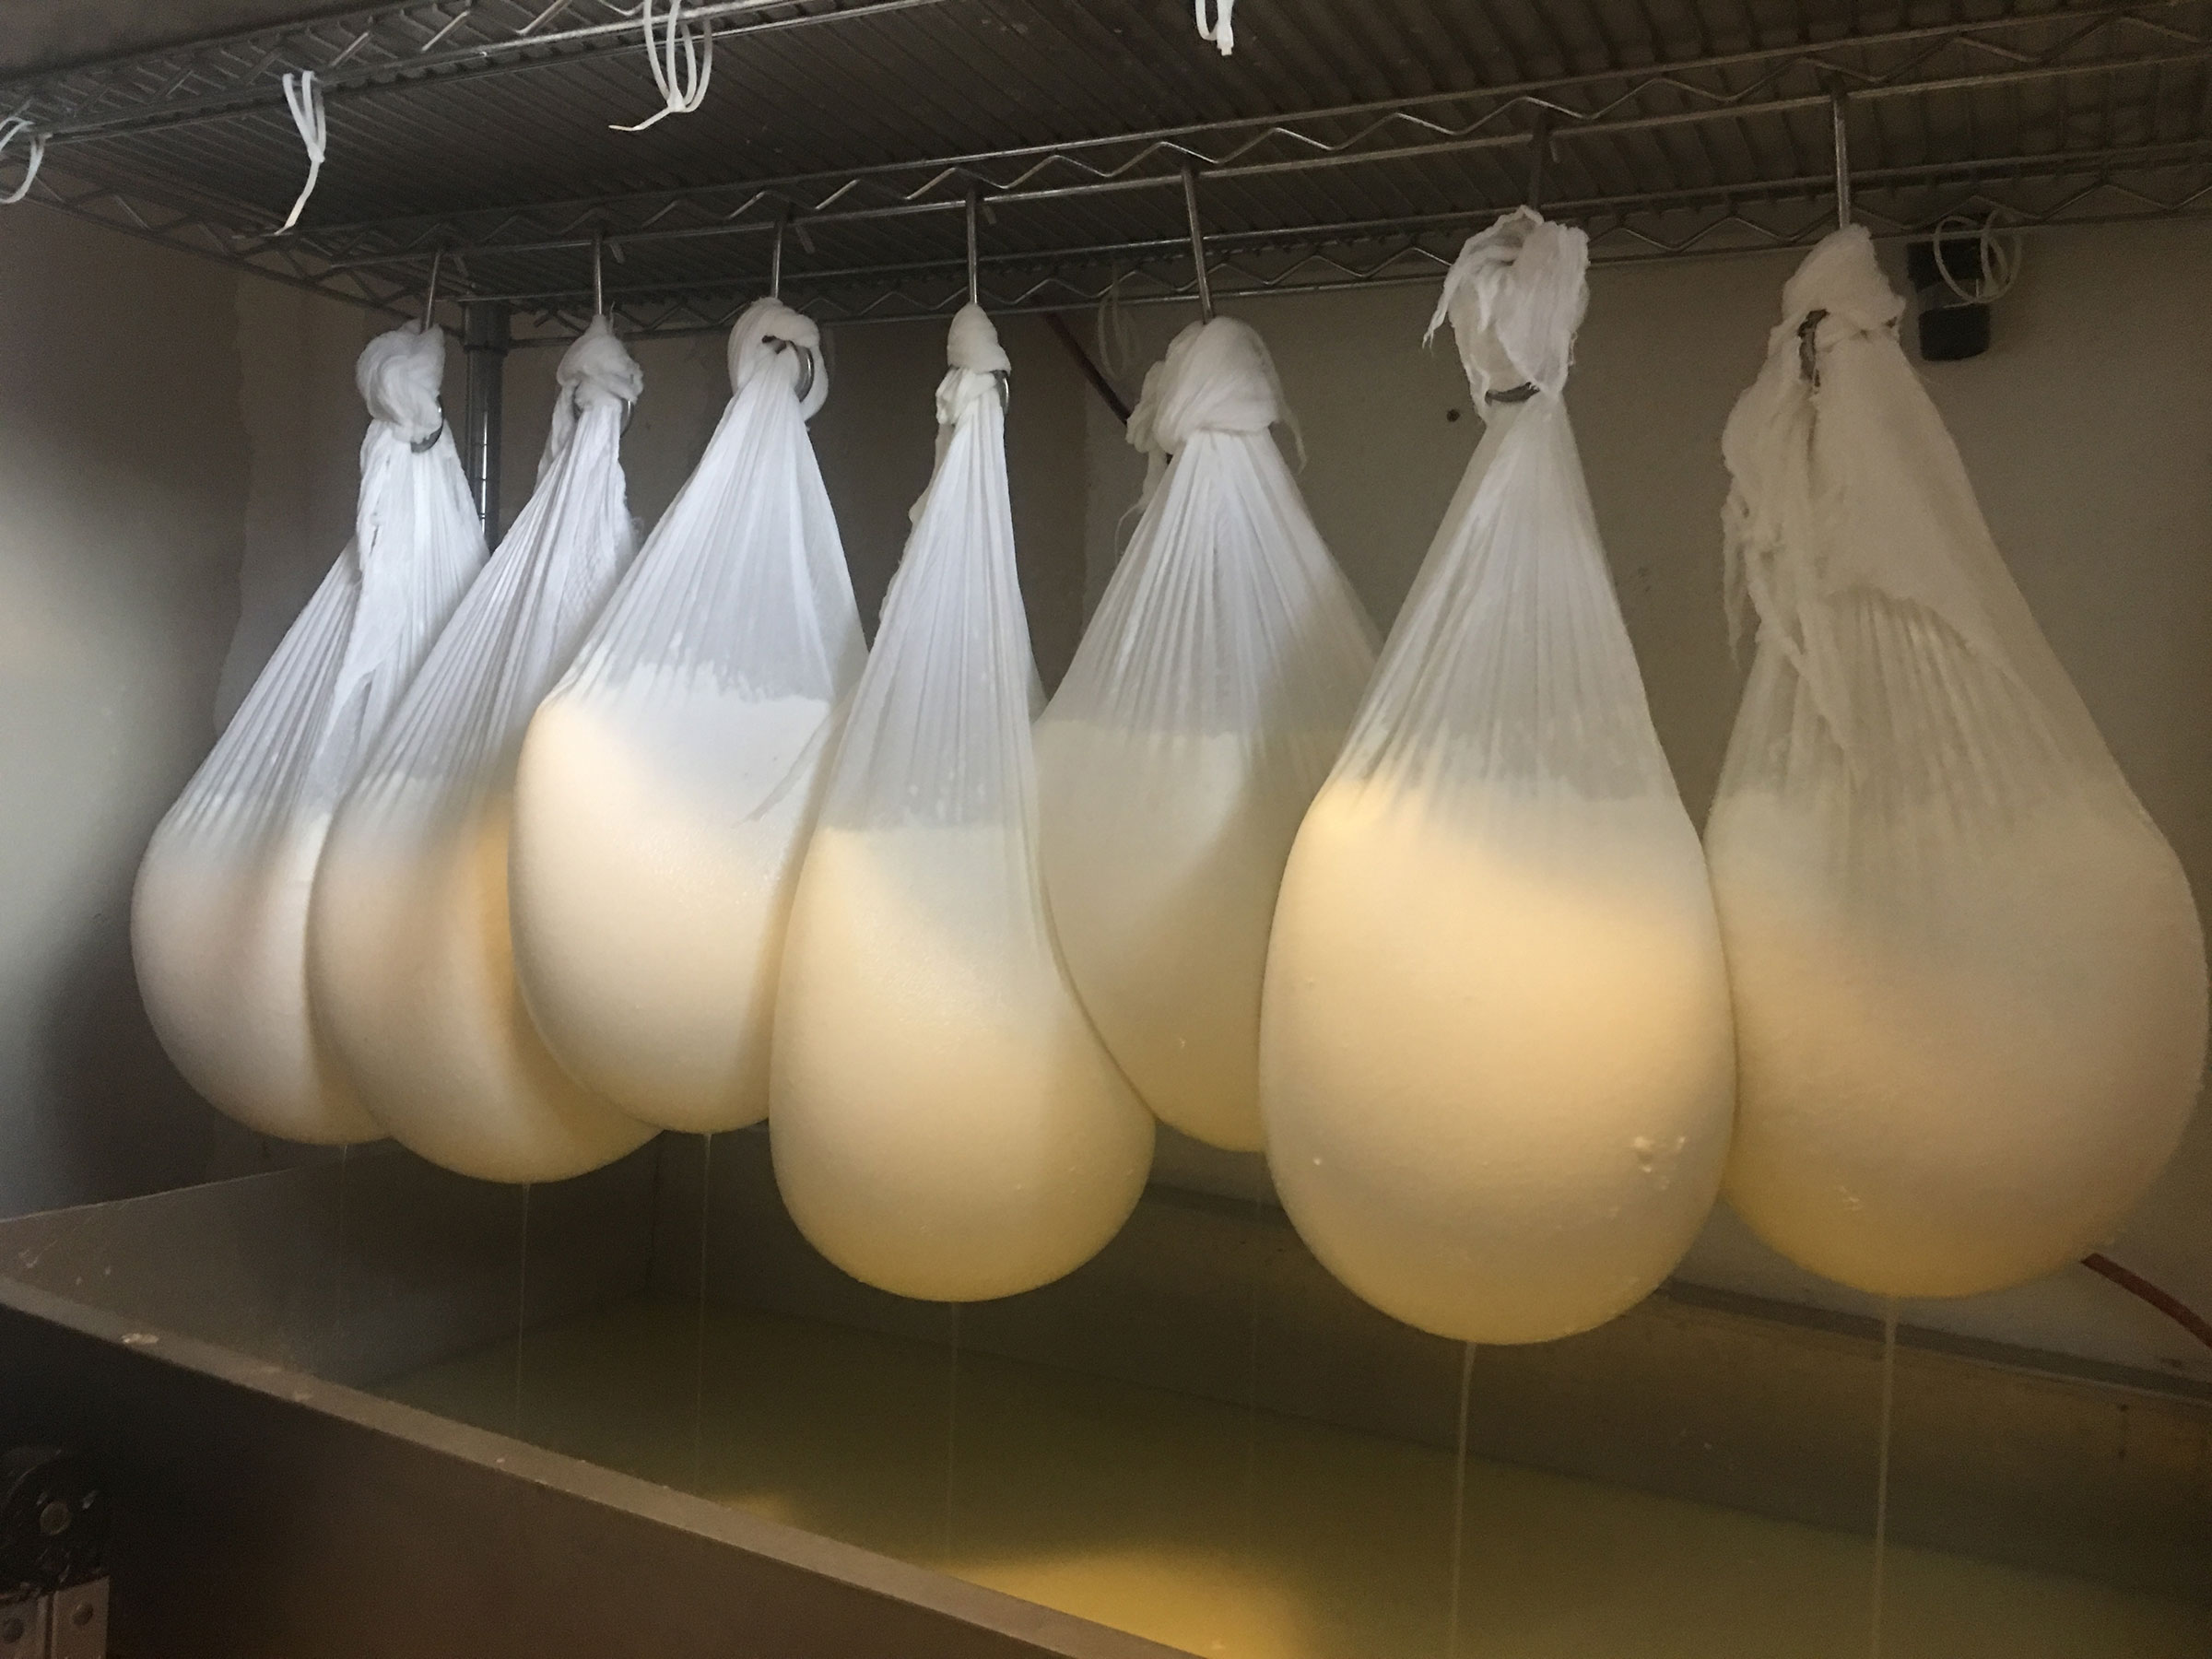 Chèvre draining at Picabo Desert Farm. Gail Ansley used to sell six figures of yogurt and cheese; this year, she sold all of her goats and shut down the business.